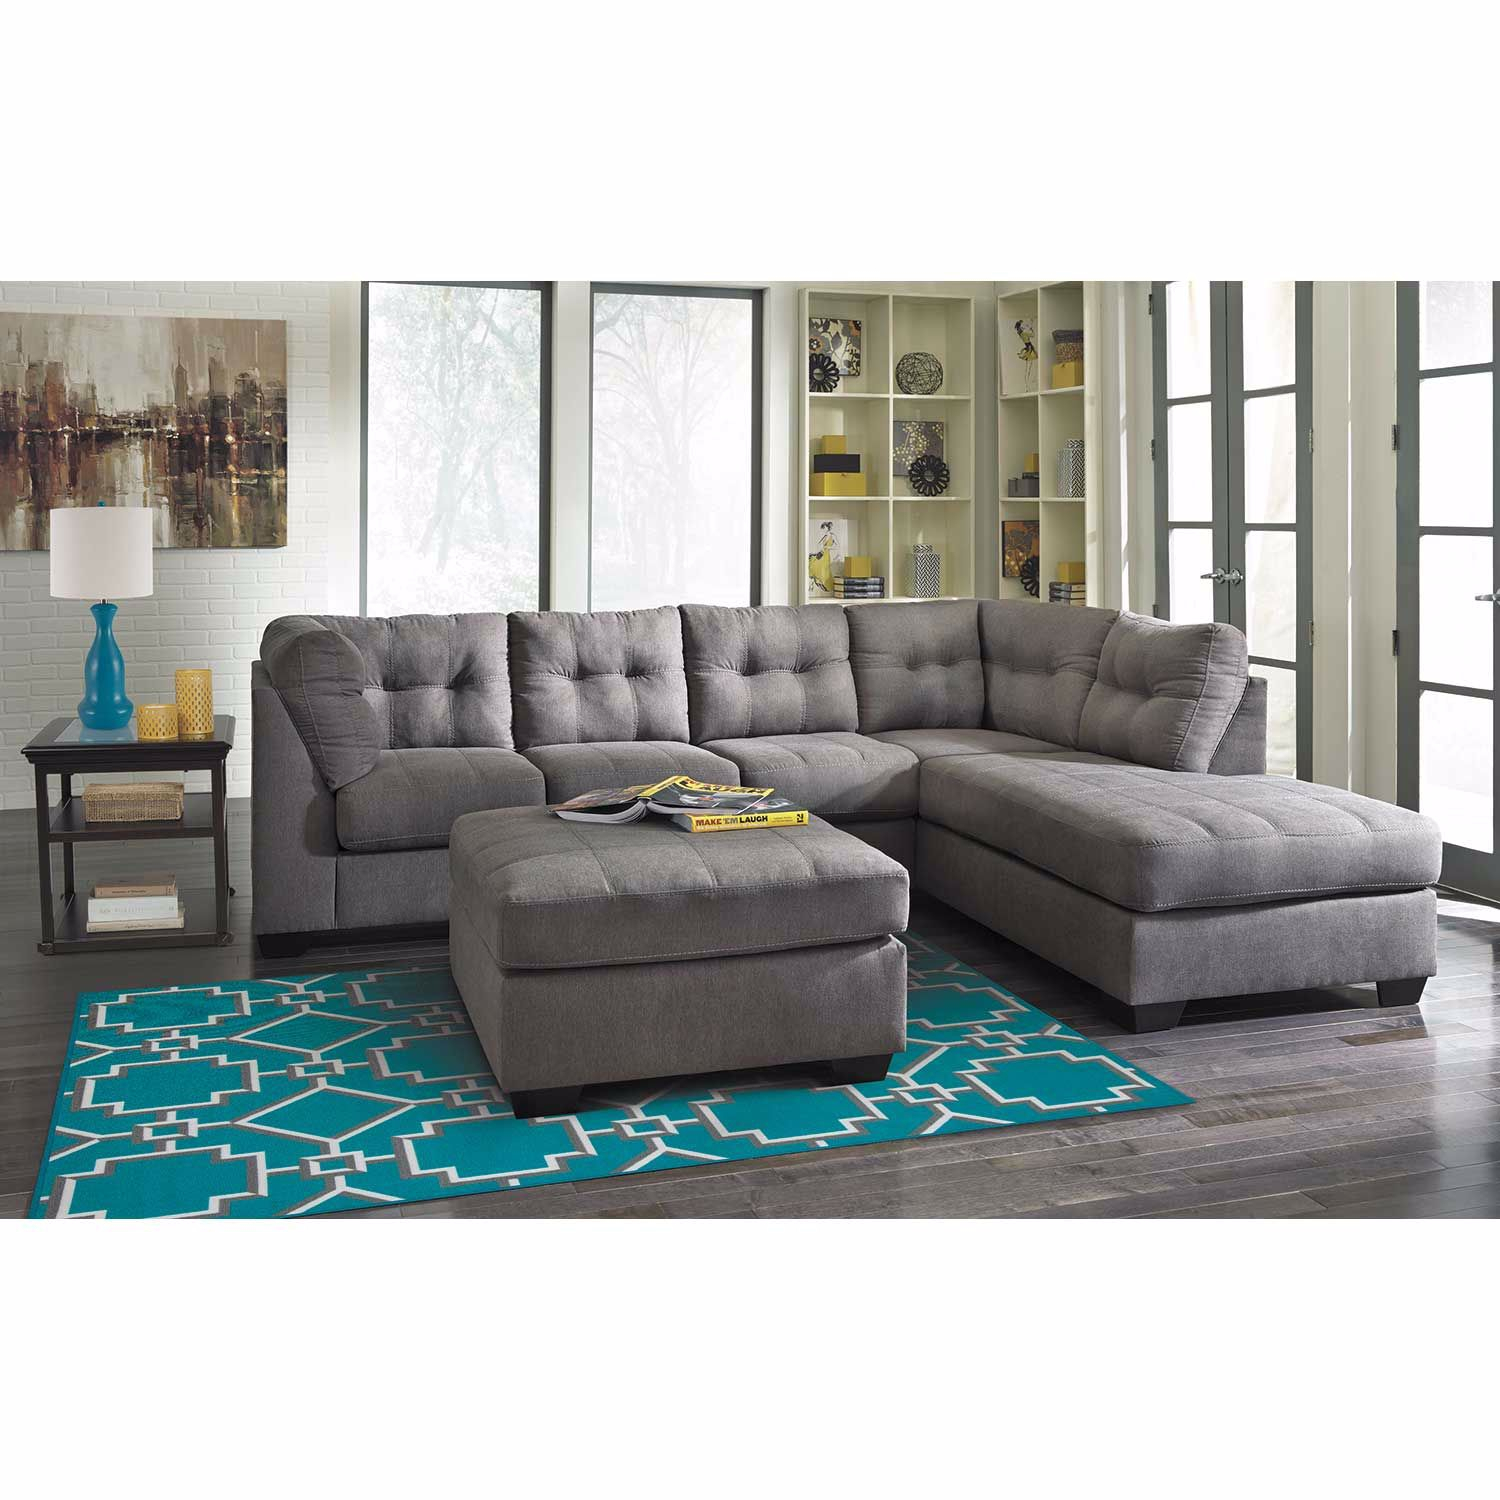 Maier Charcoal 2 Piece Sleeper Sectional With Laf Chaise With Regard To Aspen 2 Piece Sleeper Sectionals With Laf Chaise (View 7 of 15)